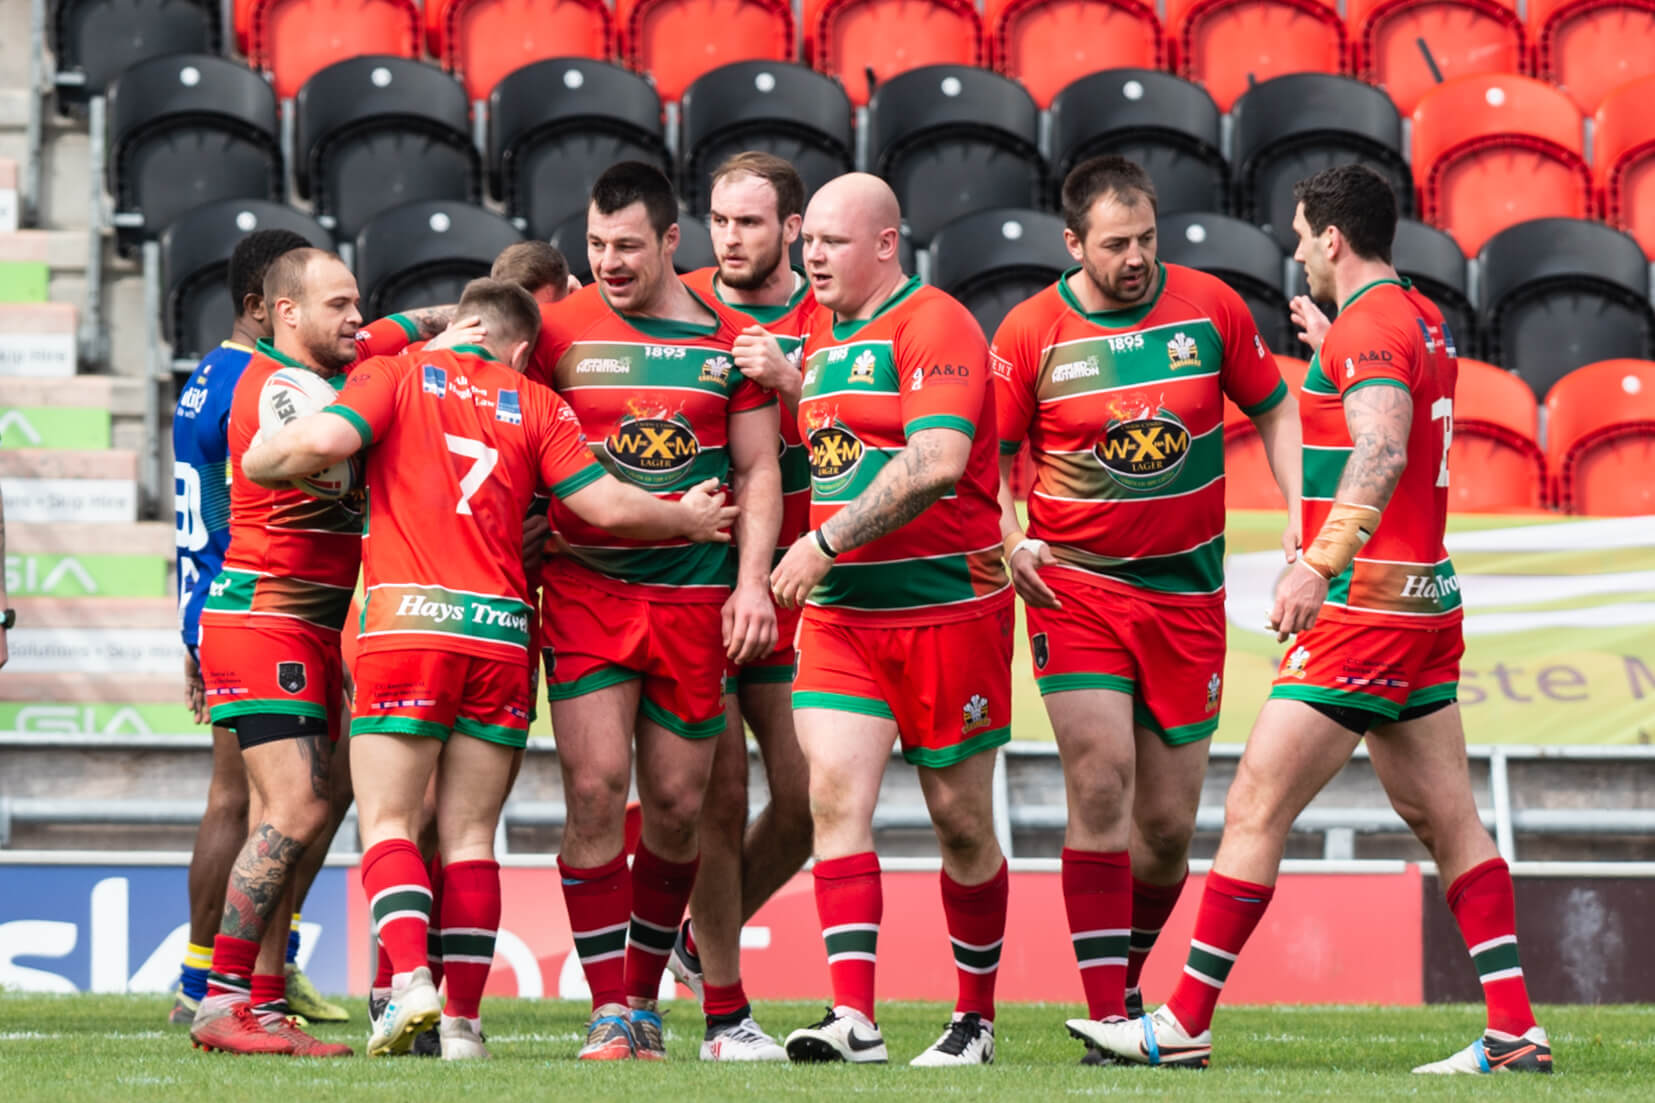 Report: Doncaster 10-12 North Wales Crusaders